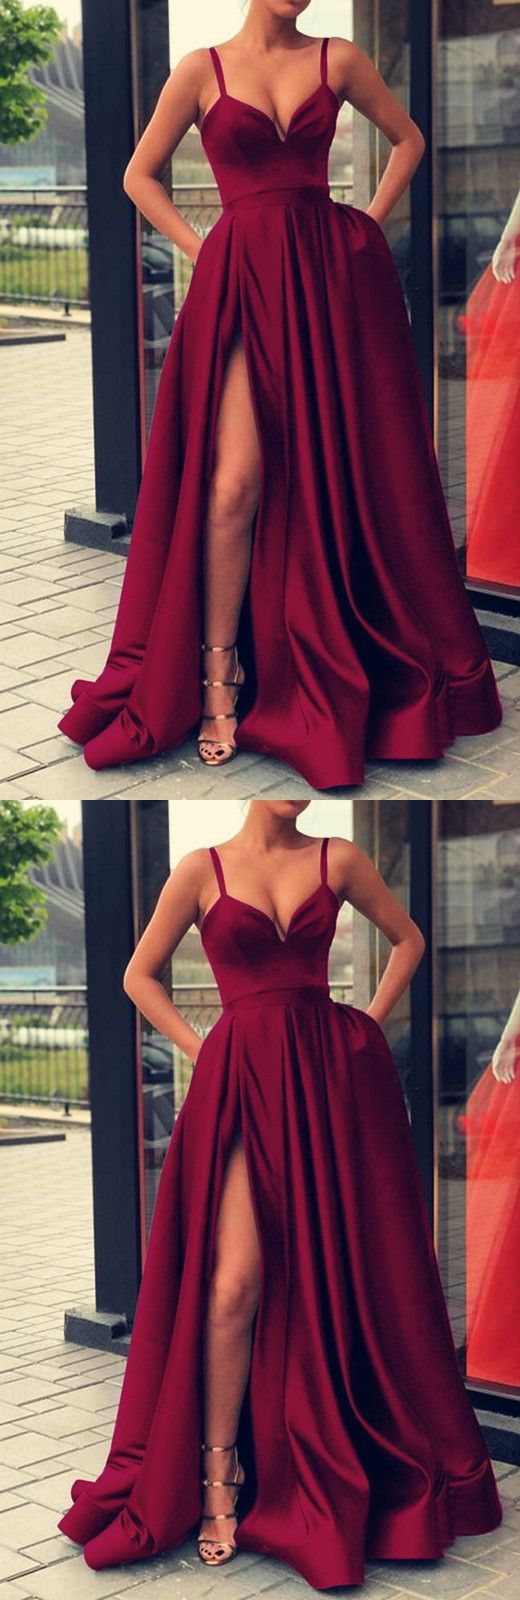 Sexy spaghetti straps vneck long satin evening gowns leg split prom